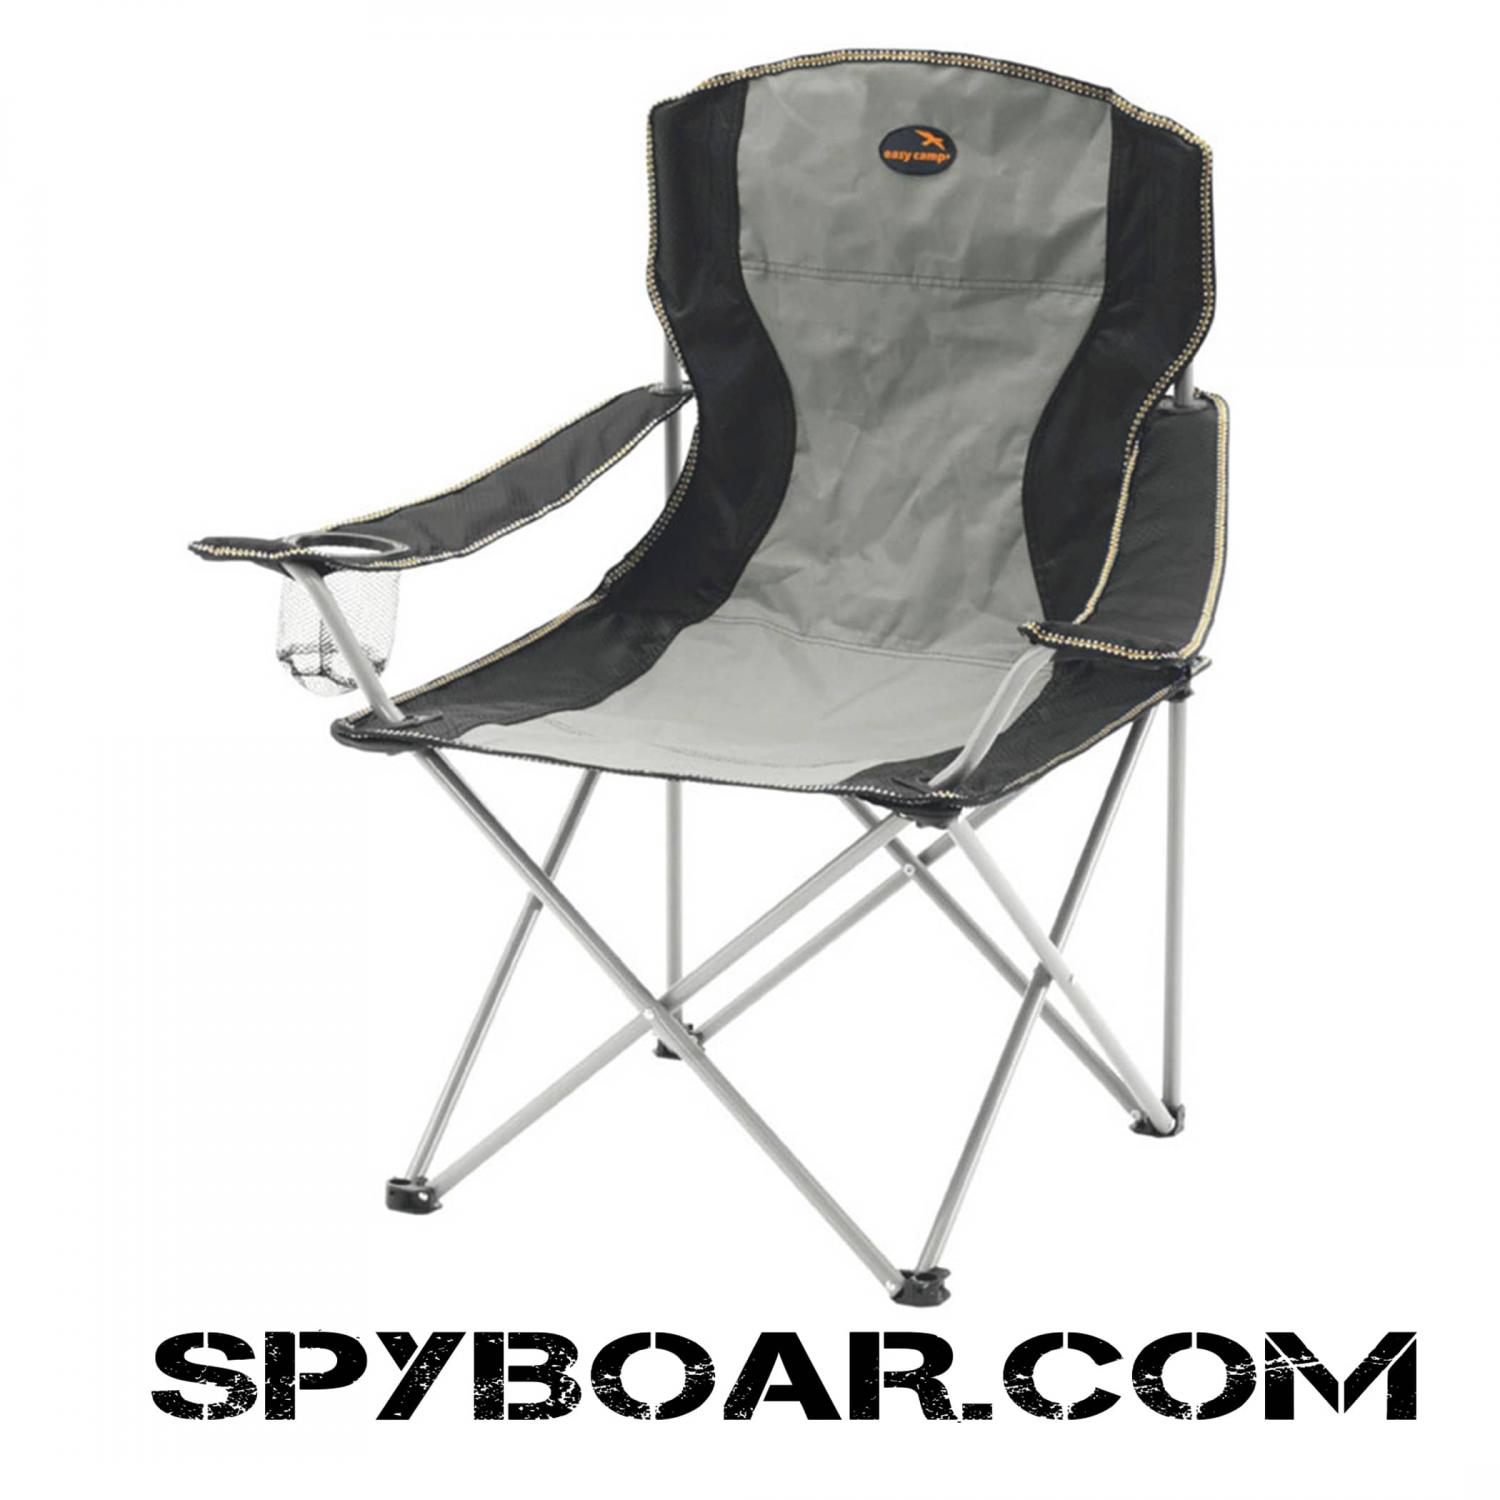 Soft Folding Chairs Easy Camp Folding Chair With Steel Frame And Cup Holders